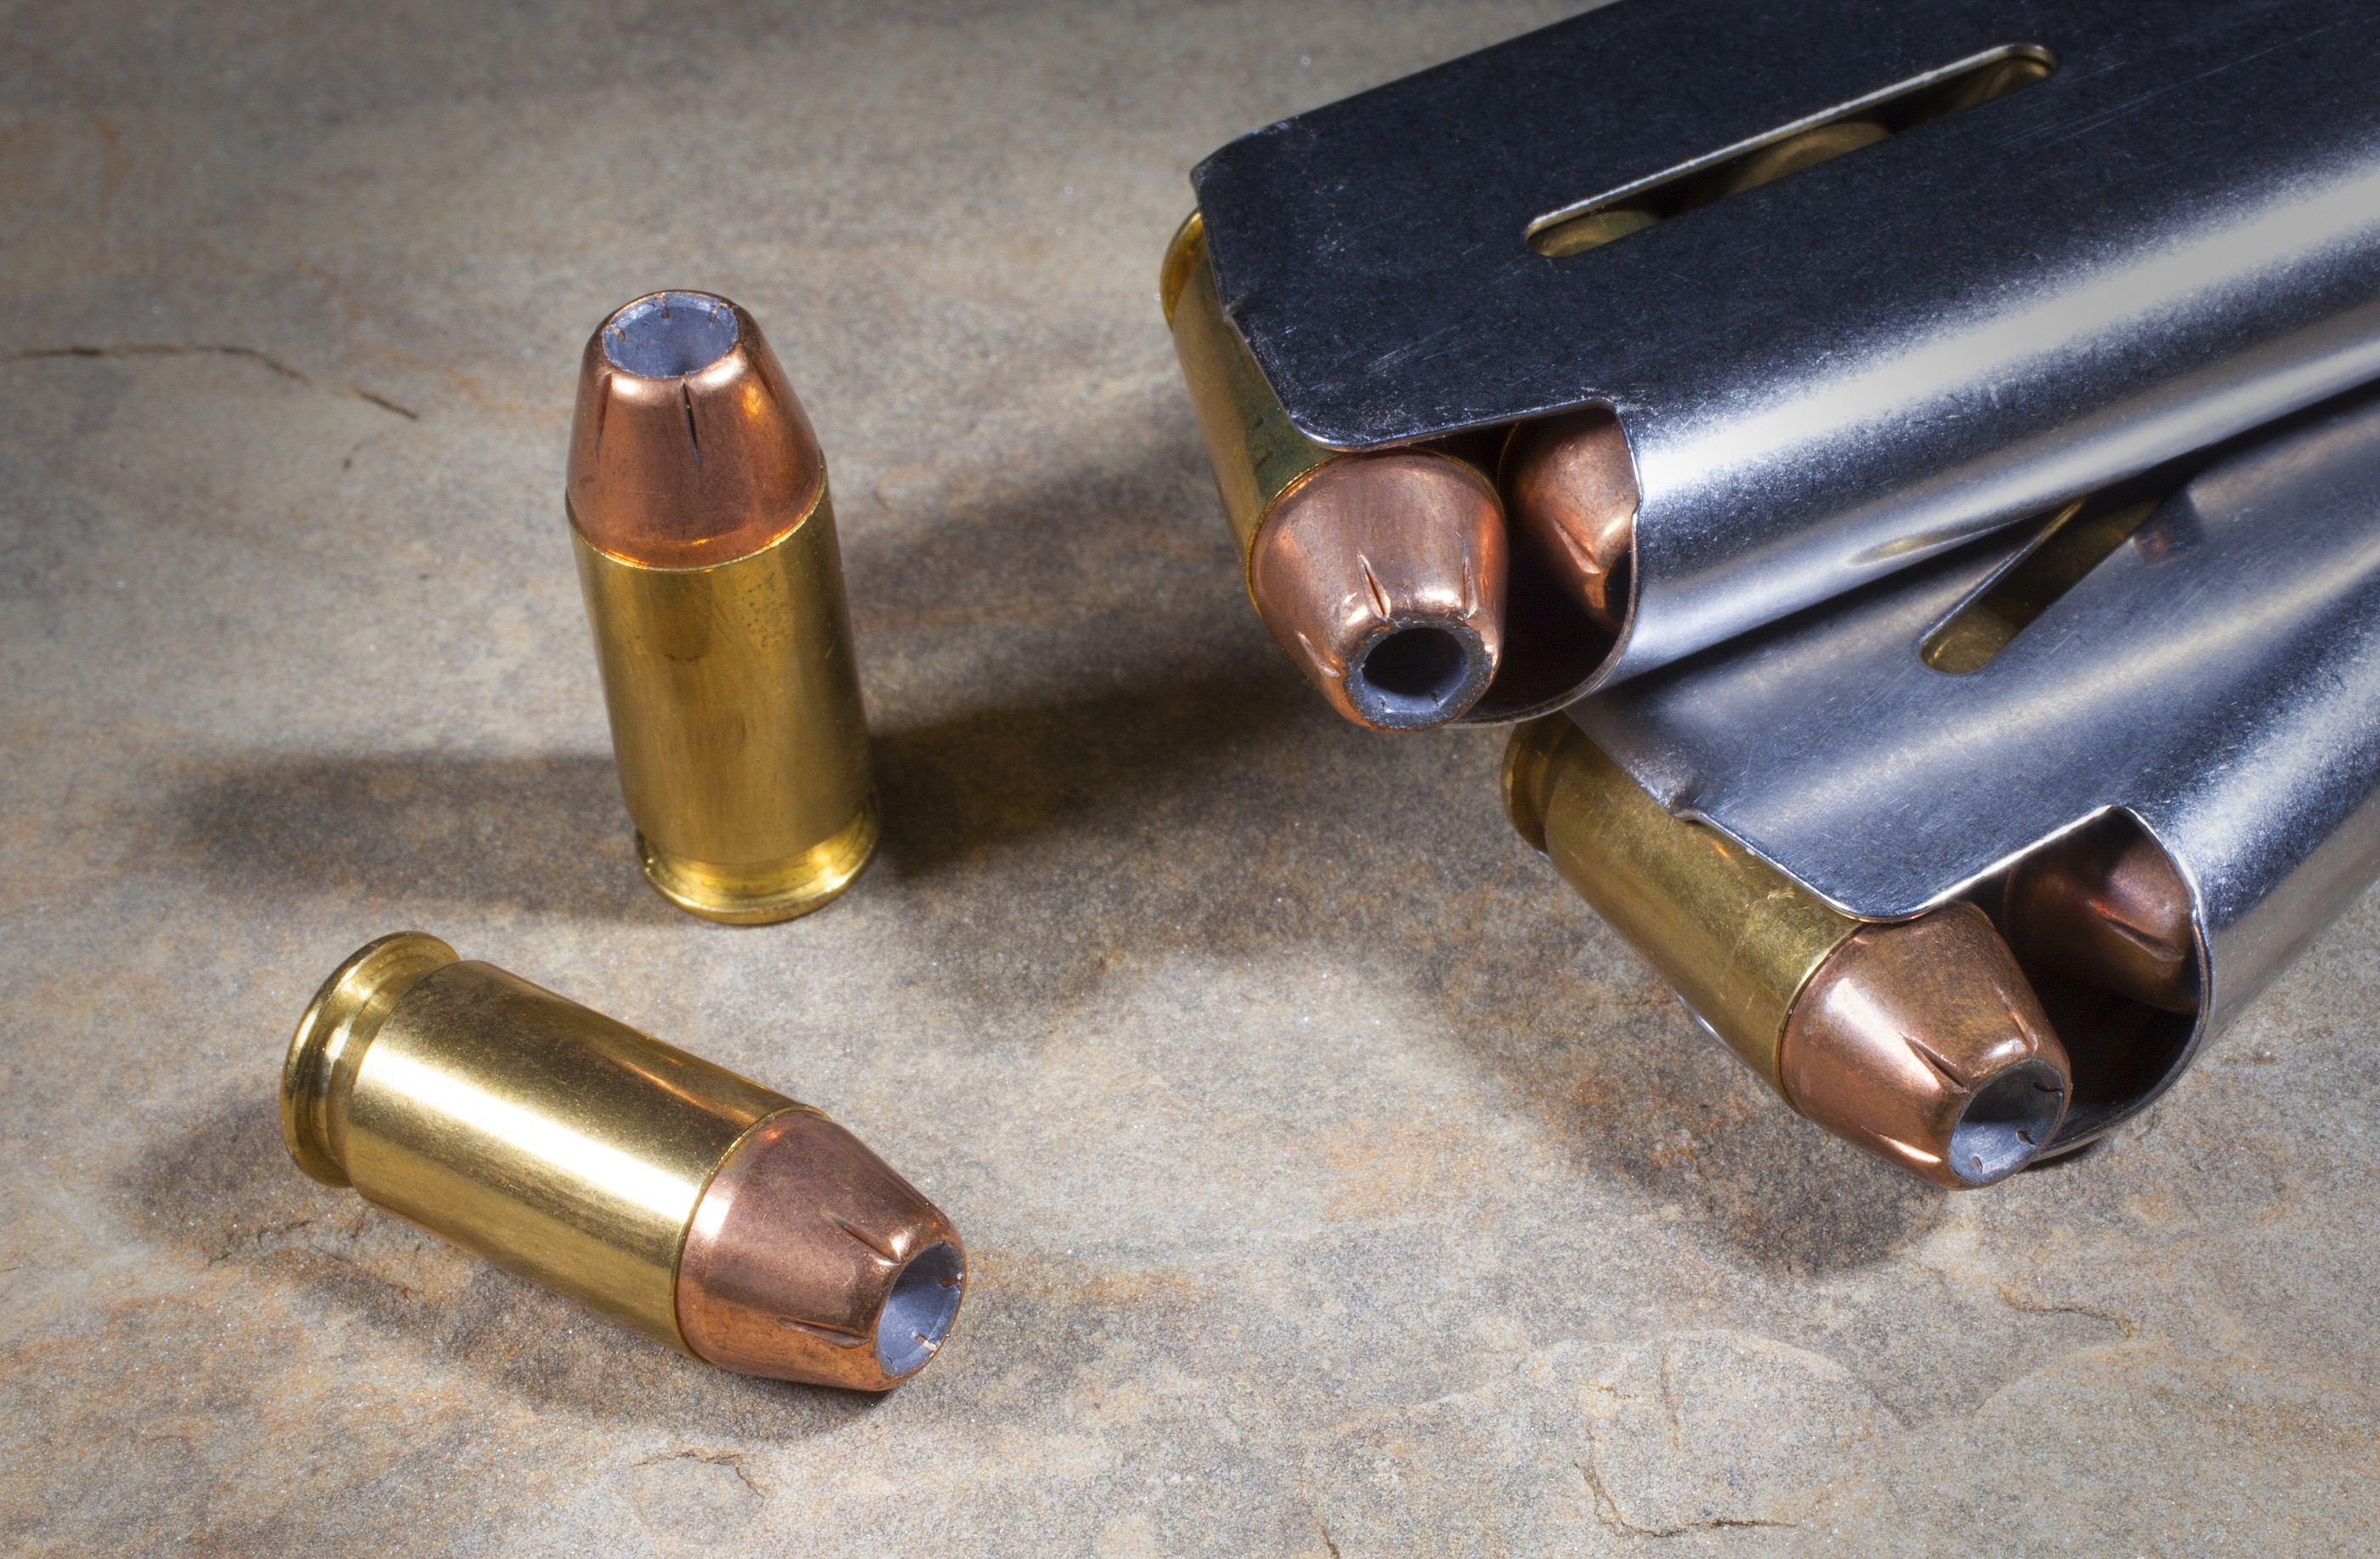 The efficacy of a hollow point bullet in home defense